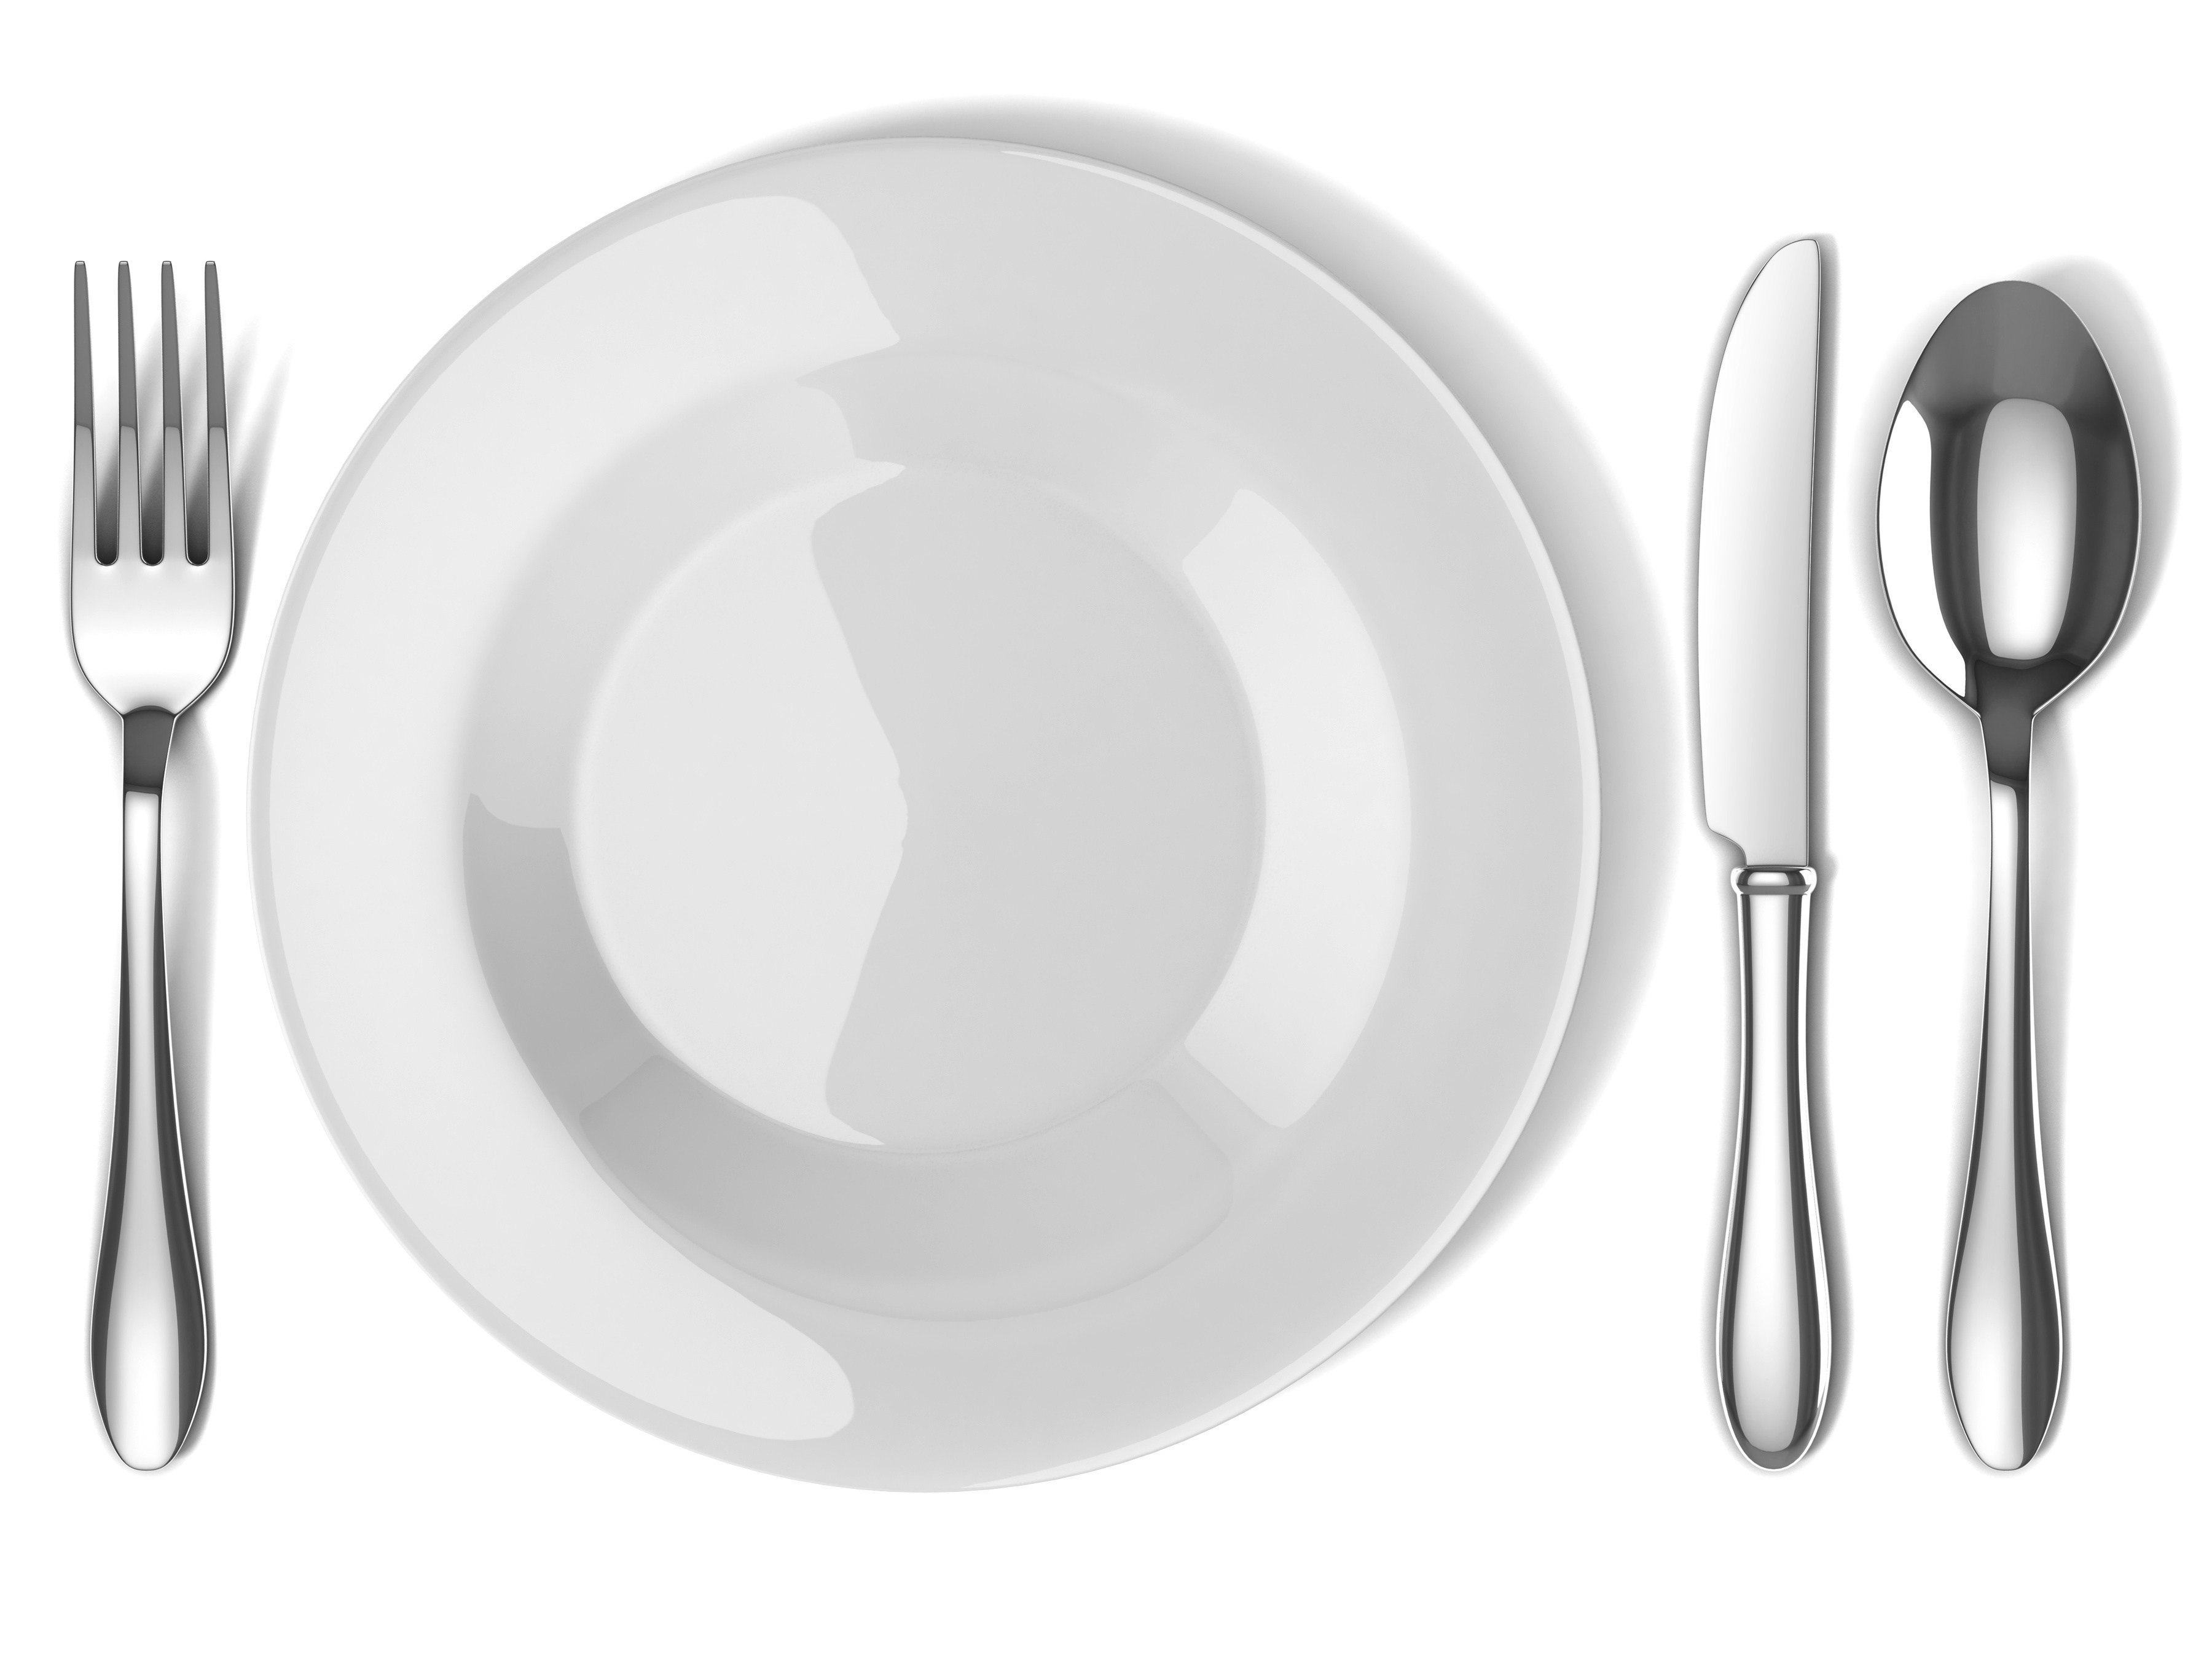 Viral Typhoon Cause Tastings : Dinner plate empty from thevt.tv size 3600 x 2700 jpeg 418kB